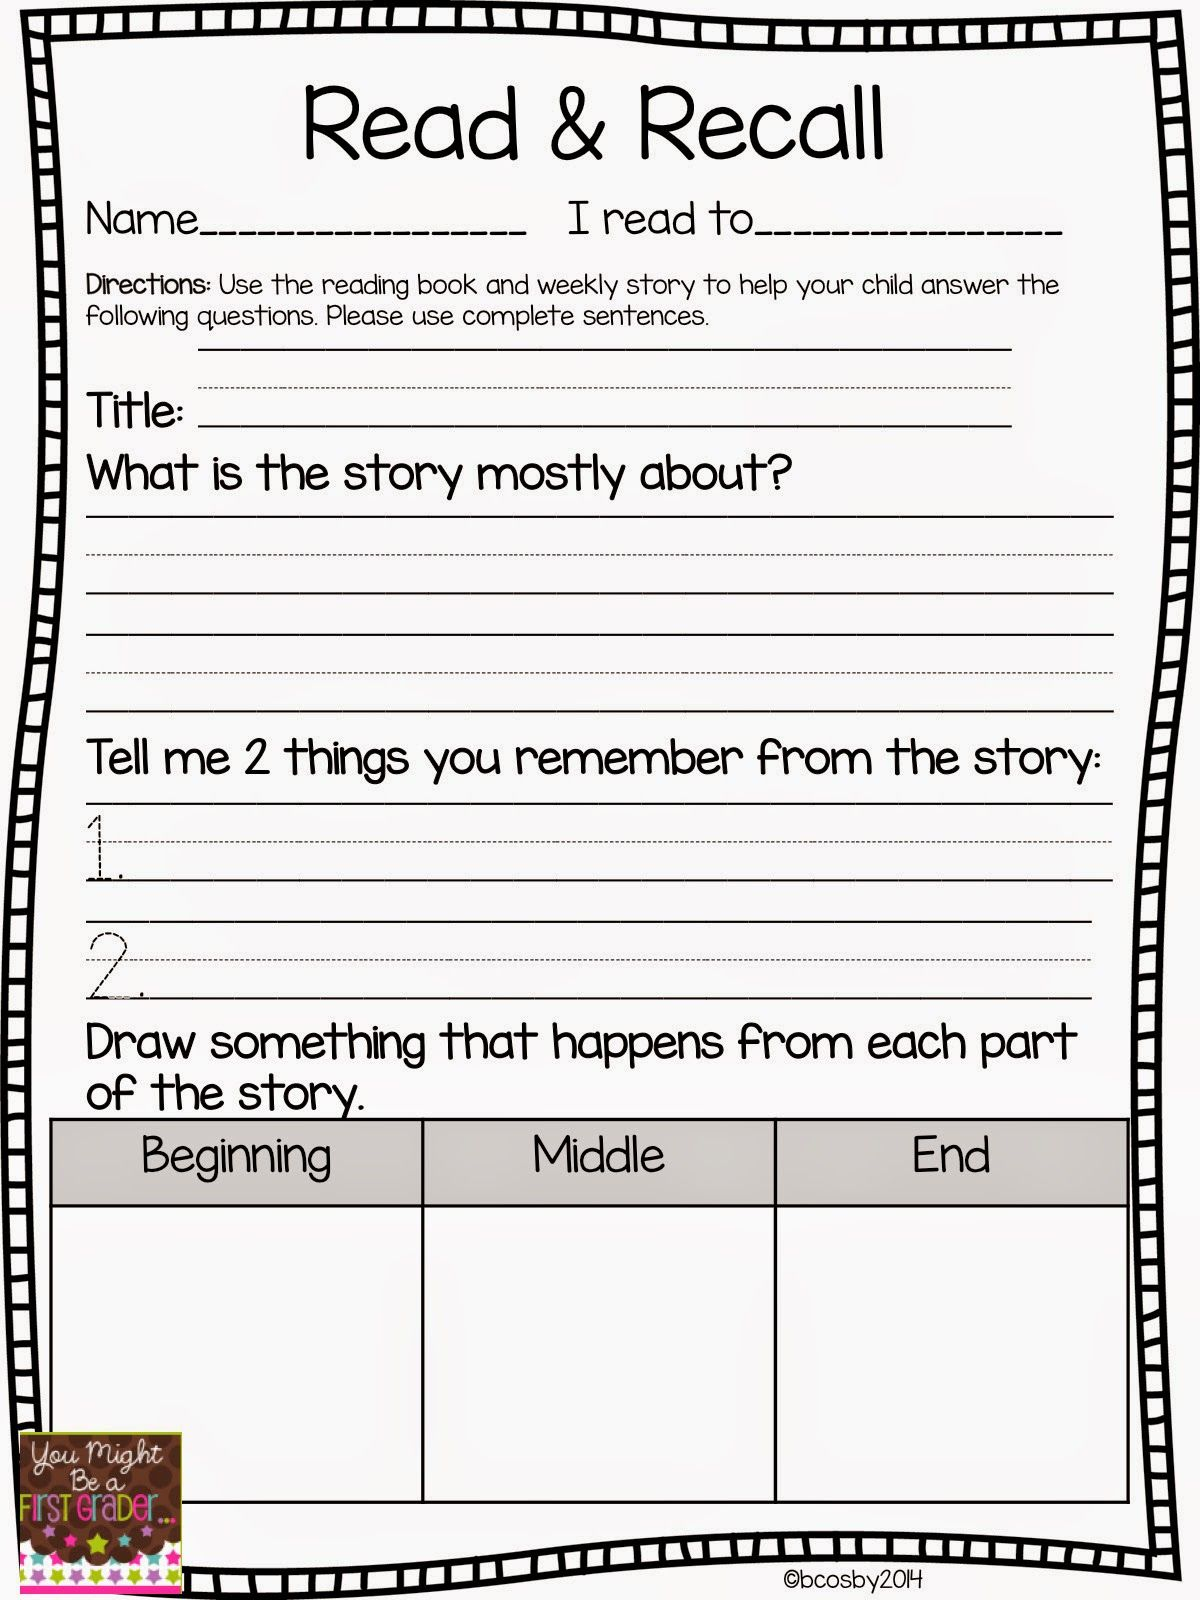 hight resolution of Reading Comprehension - Classroom Freebies   First grade reading